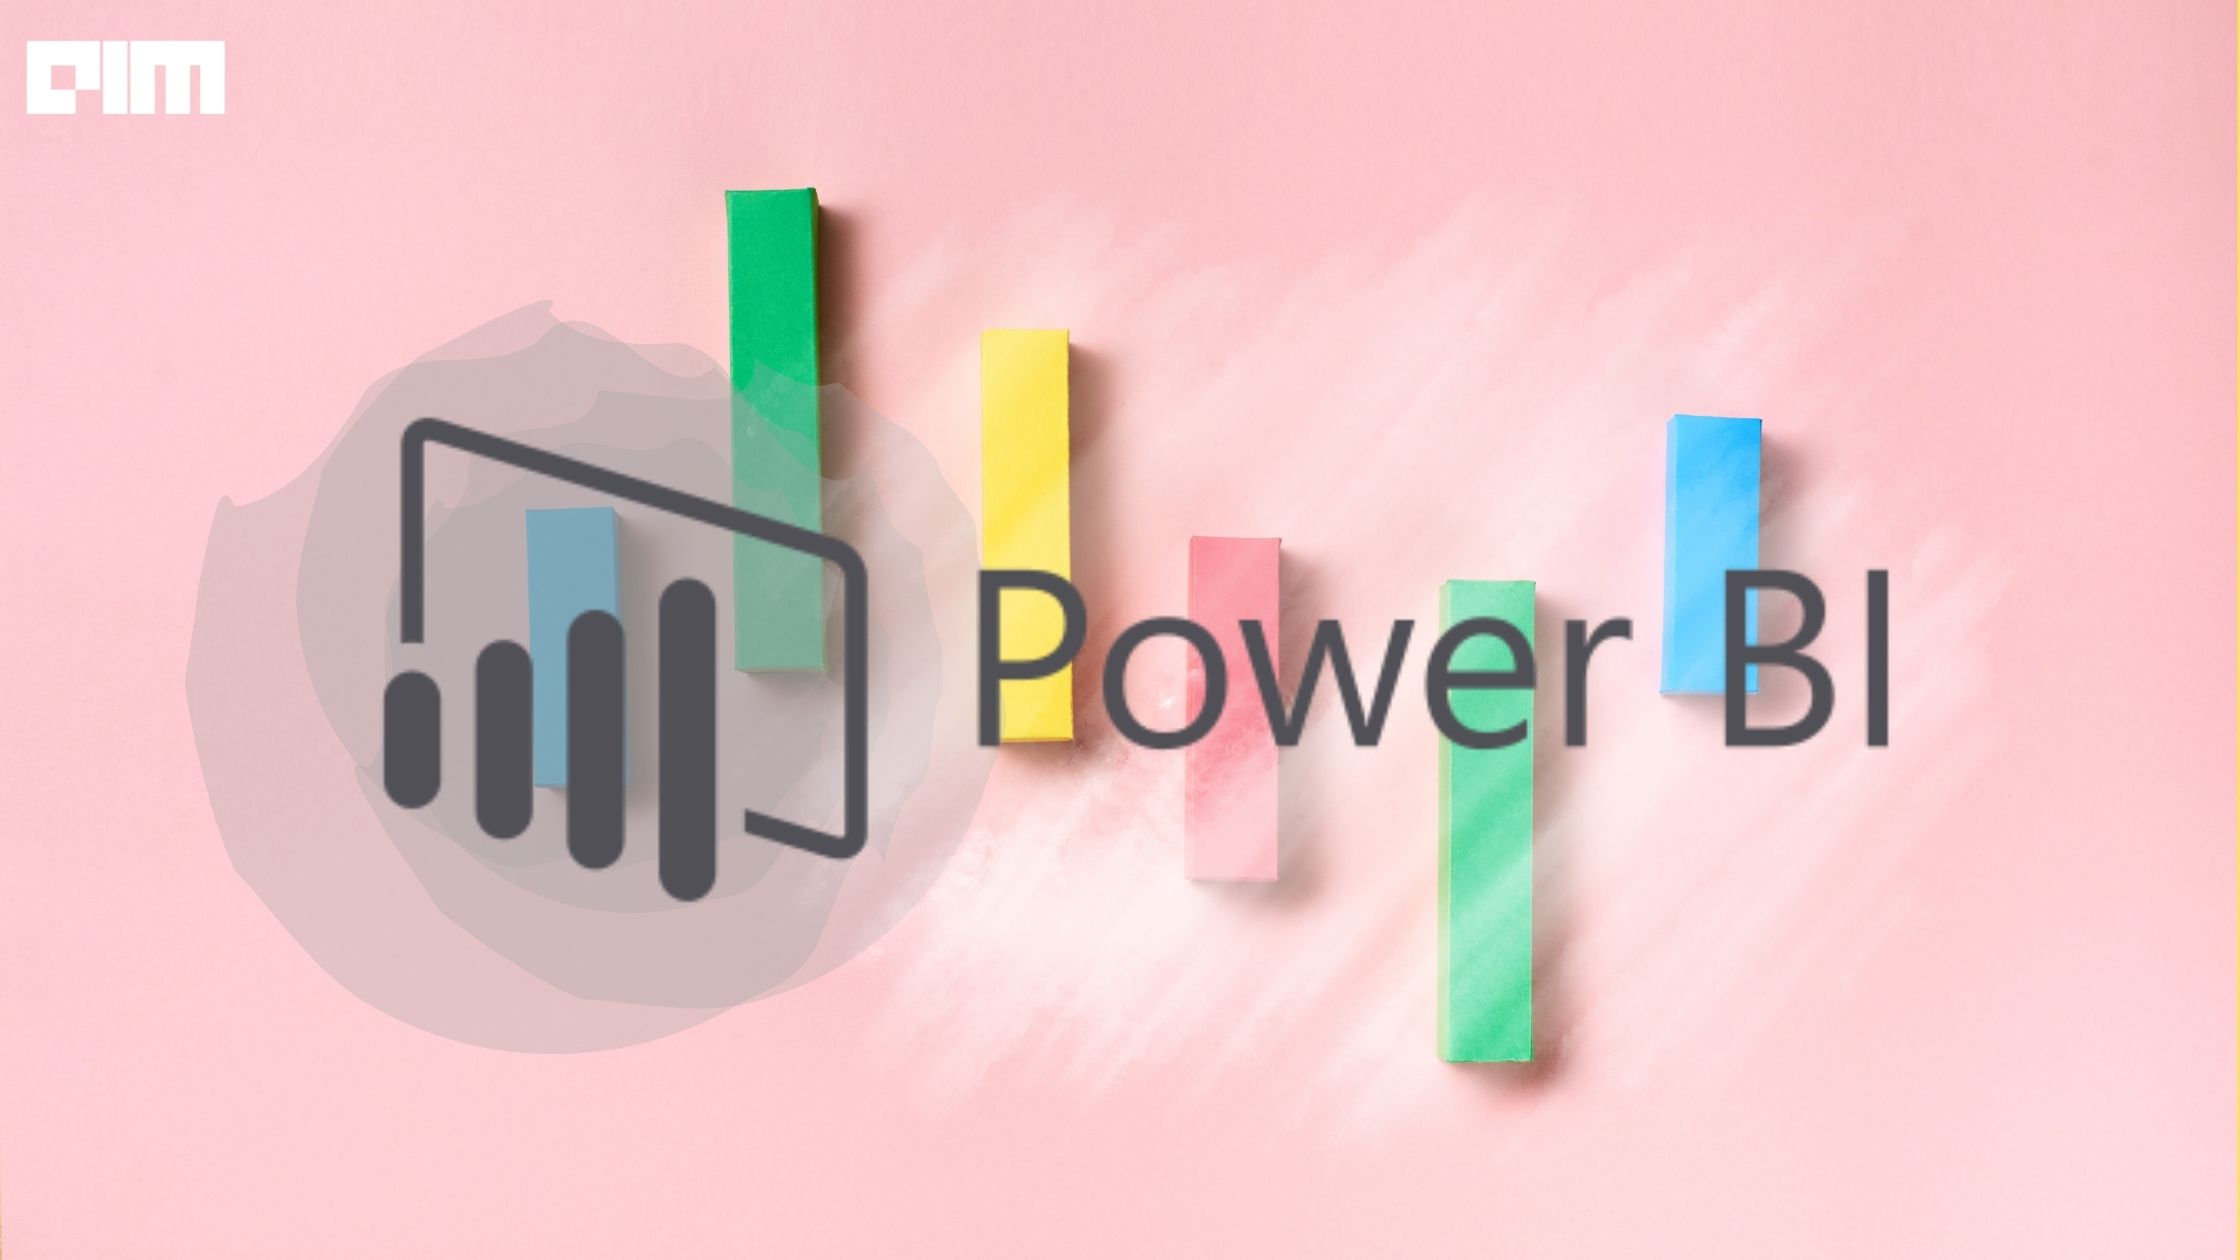 Top 10 Free Resources To Learn Power BI In 2021